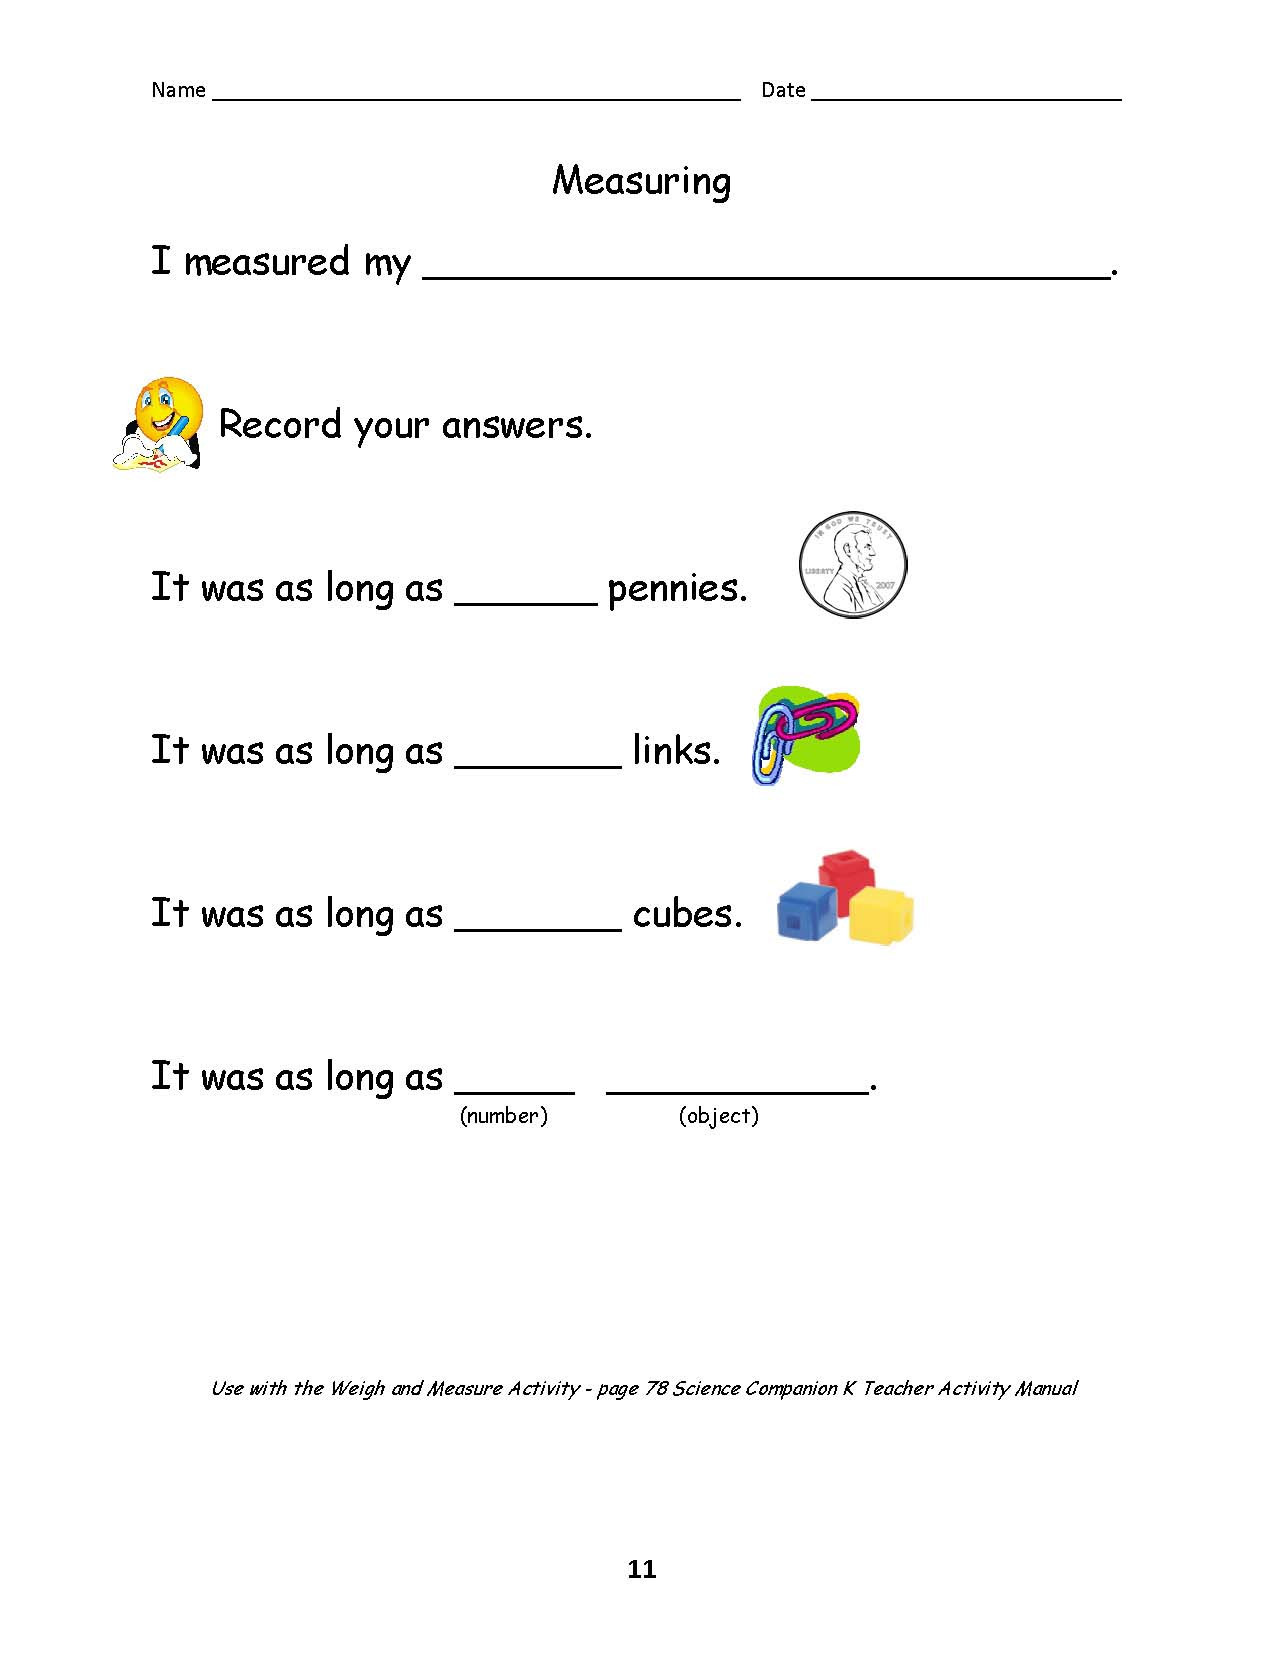 Internet Safety Worksheets Printable Line Connections Science and Children